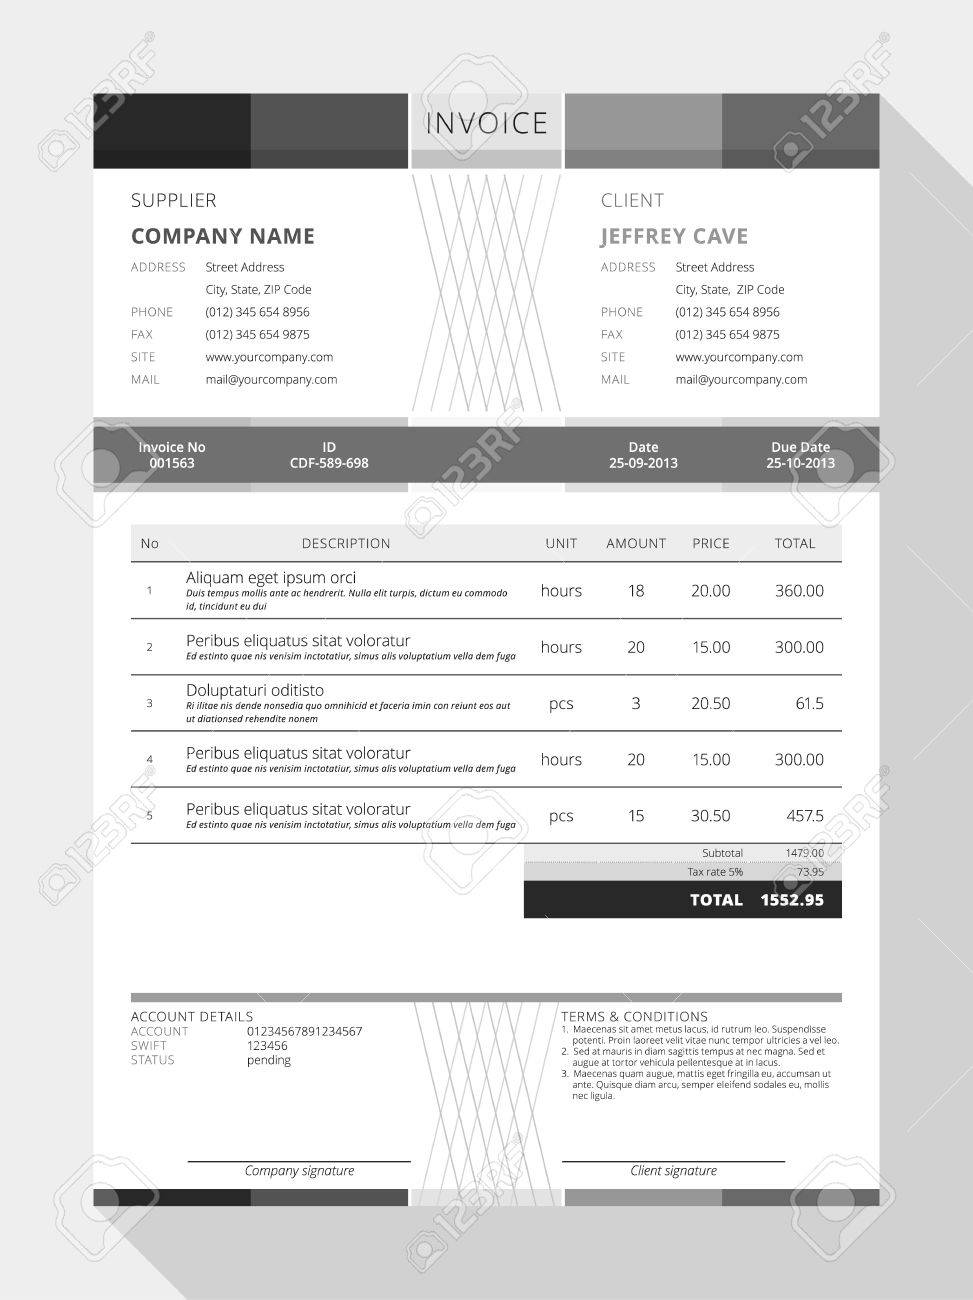 Pxworkoutfreeus  Mesmerizing Design An Invoice  Professional Graphic Design Invoice  With Engaging Vector Customizable Invoice Form Template Design Vector   Design An Invoice With Amazing This Is To Acknowledge Receipt Of Also Make Fake Receipts In Addition Receipt Against Payment And Receipt Spanish As Well As Mrv Fee Payment Receipt Additionally Without Receipt From Happytomco With Pxworkoutfreeus  Engaging Design An Invoice  Professional Graphic Design Invoice  With Amazing Vector Customizable Invoice Form Template Design Vector   Design An Invoice And Mesmerizing This Is To Acknowledge Receipt Of Also Make Fake Receipts In Addition Receipt Against Payment From Happytomco